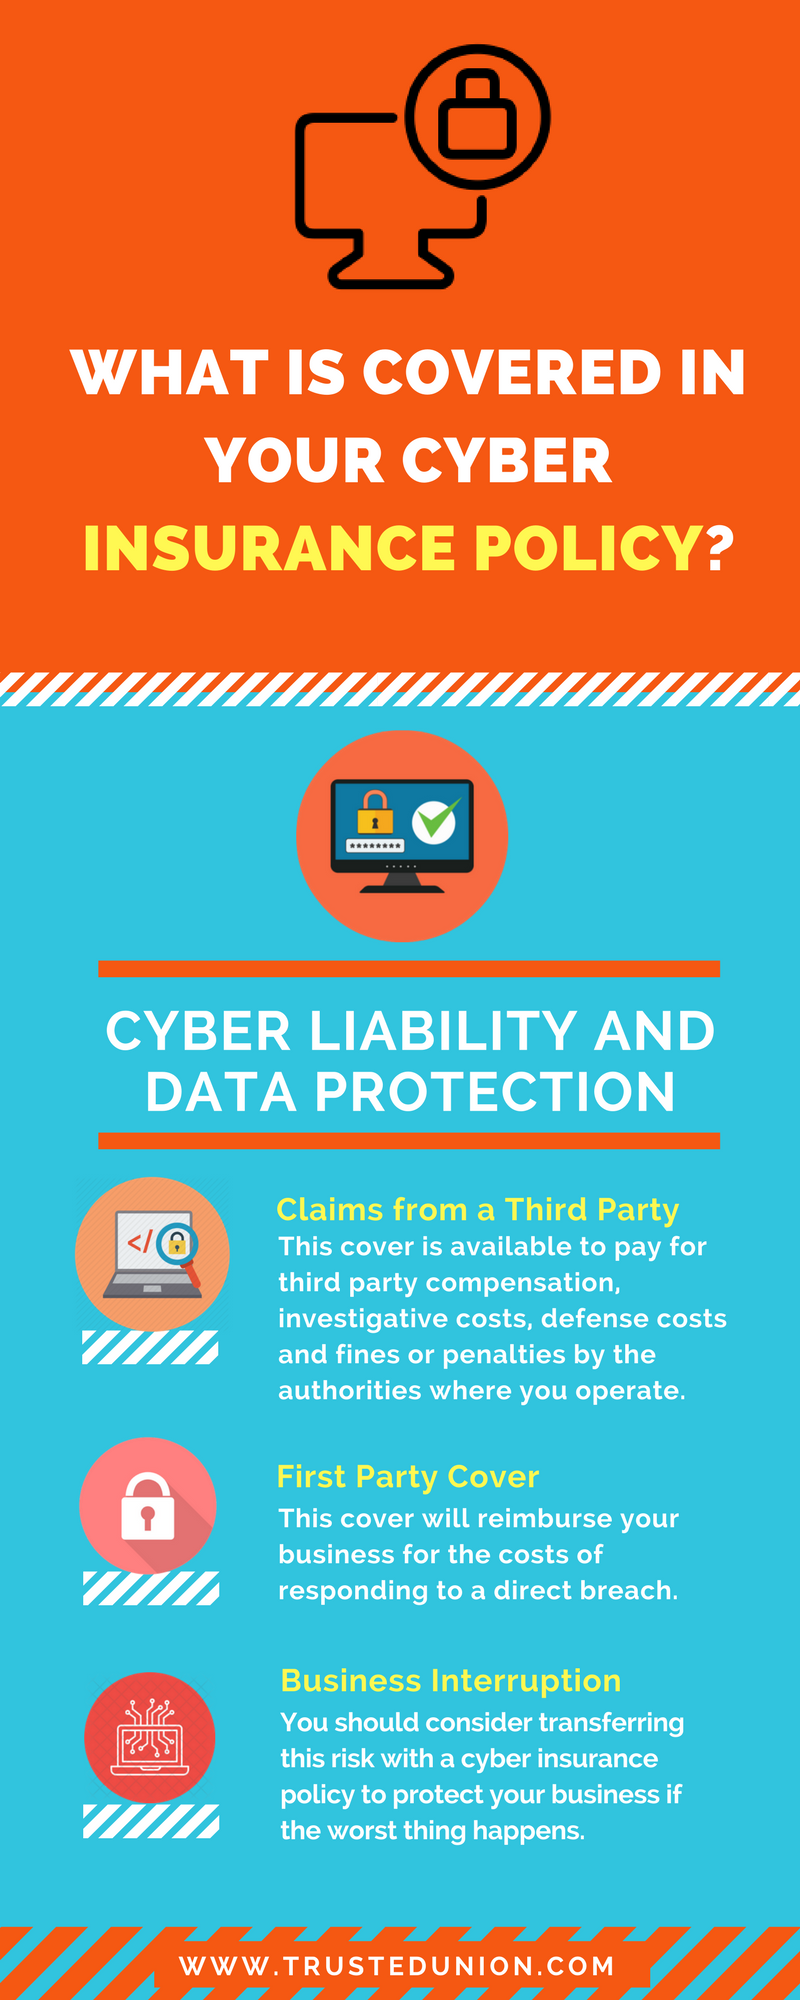 A comprehensive cyber liability and data protection policy ...